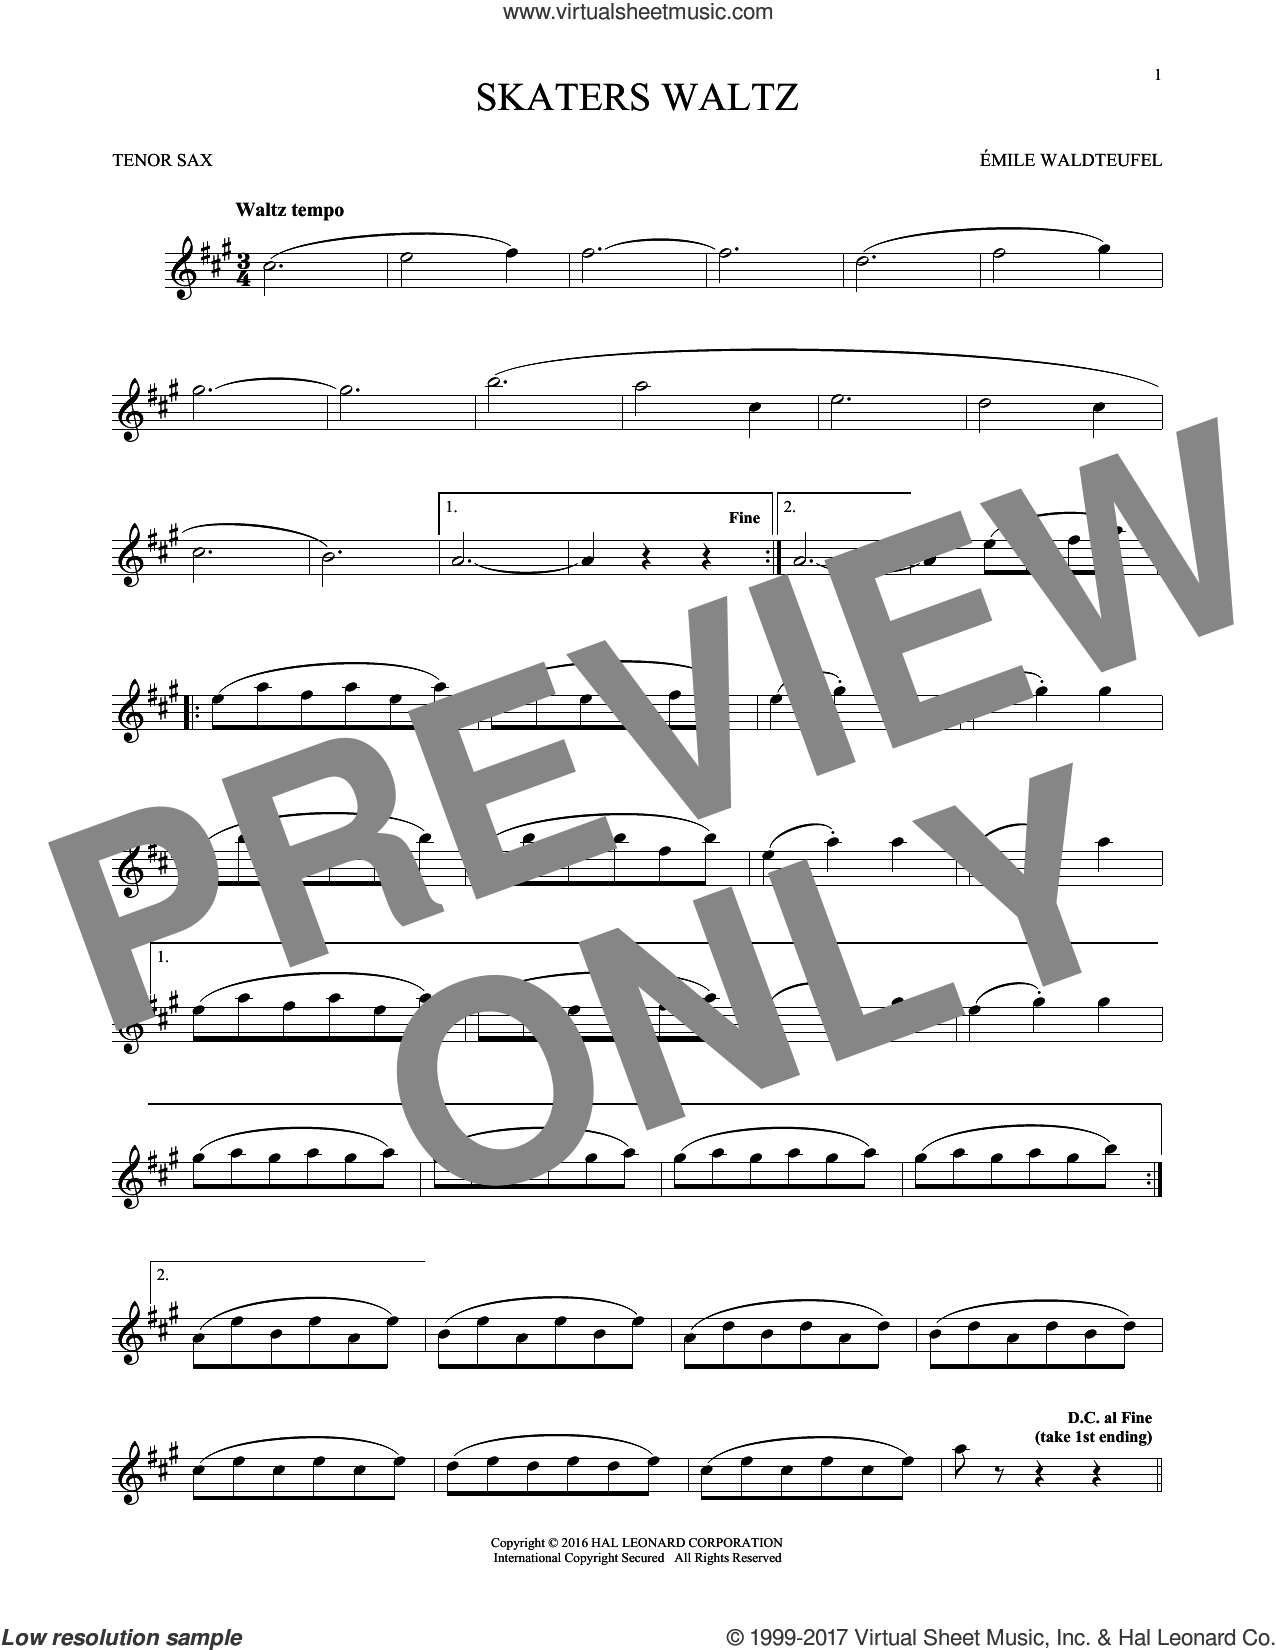 The Skaters (Waltz) sheet music for tenor saxophone solo by Emile Waldteufel, classical score, intermediate skill level